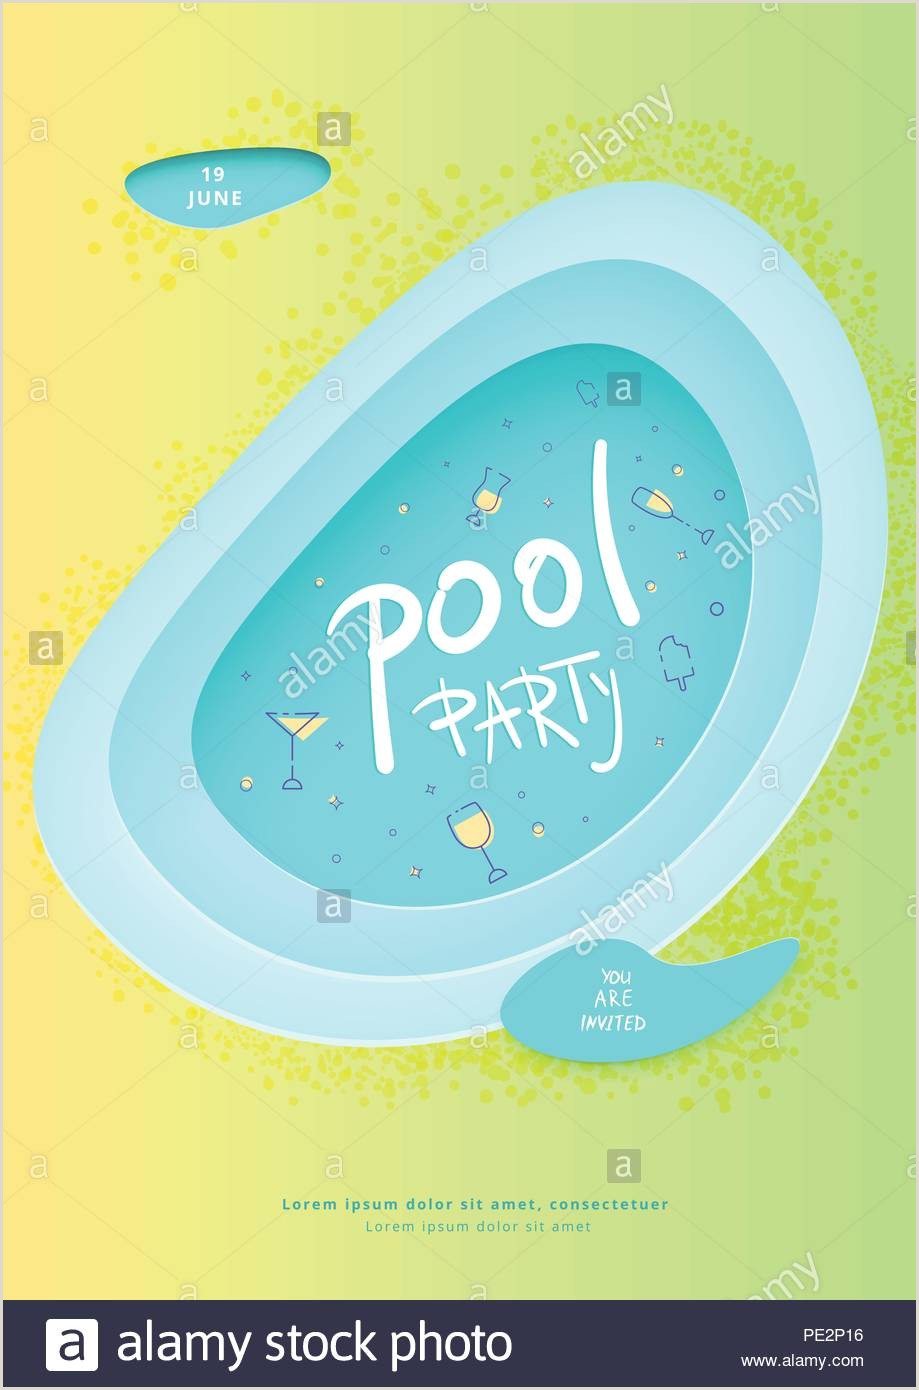 Pool party vertical flyer summer celebration banner with